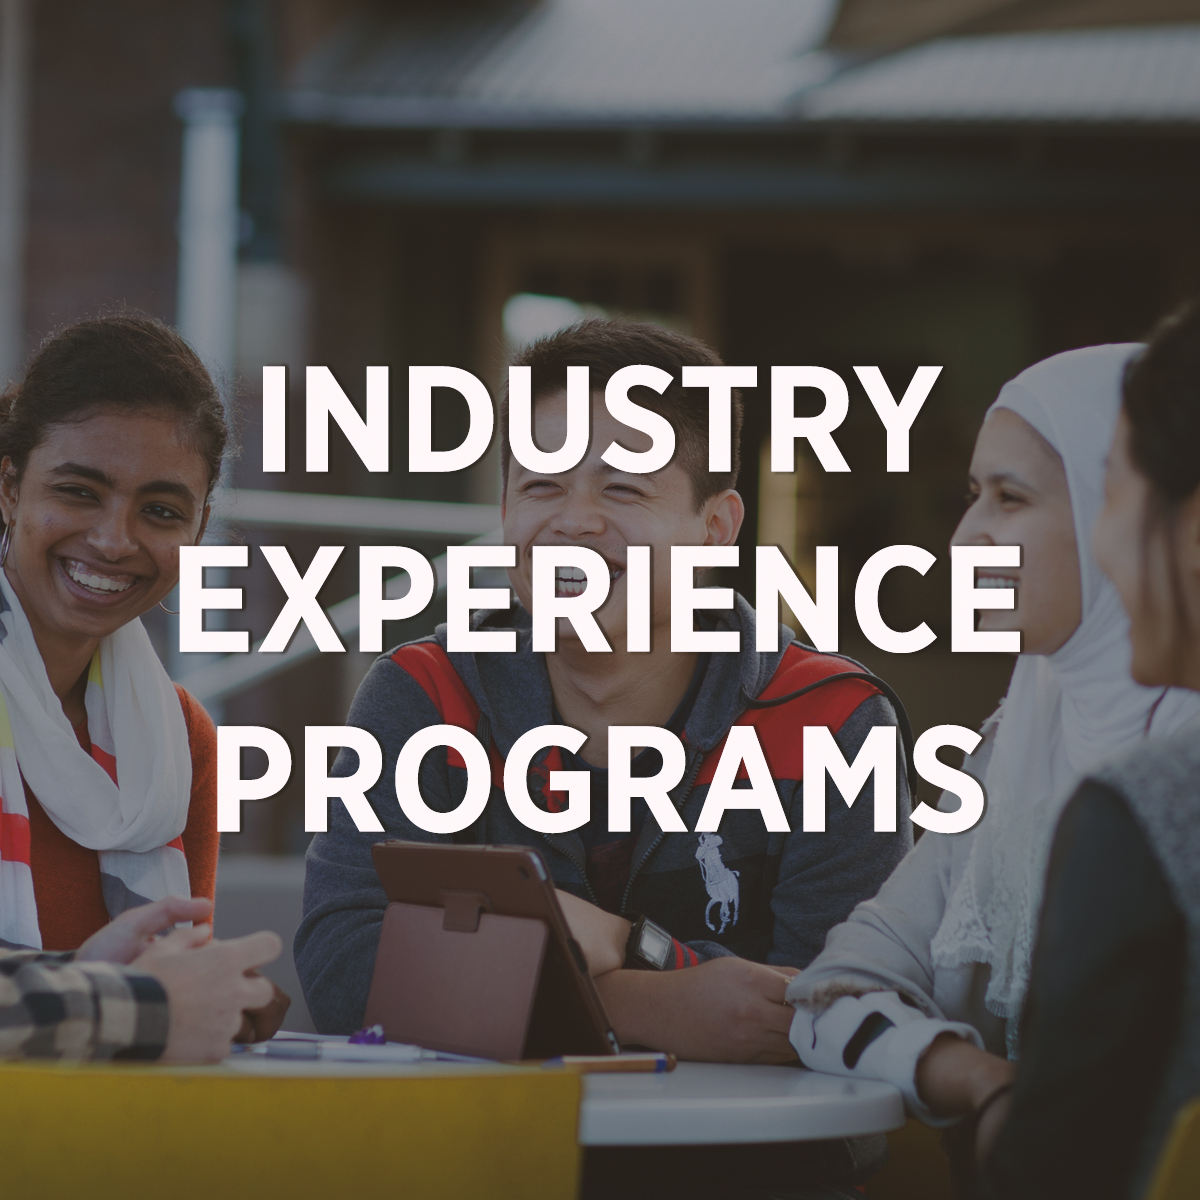 Industry Experience Programs